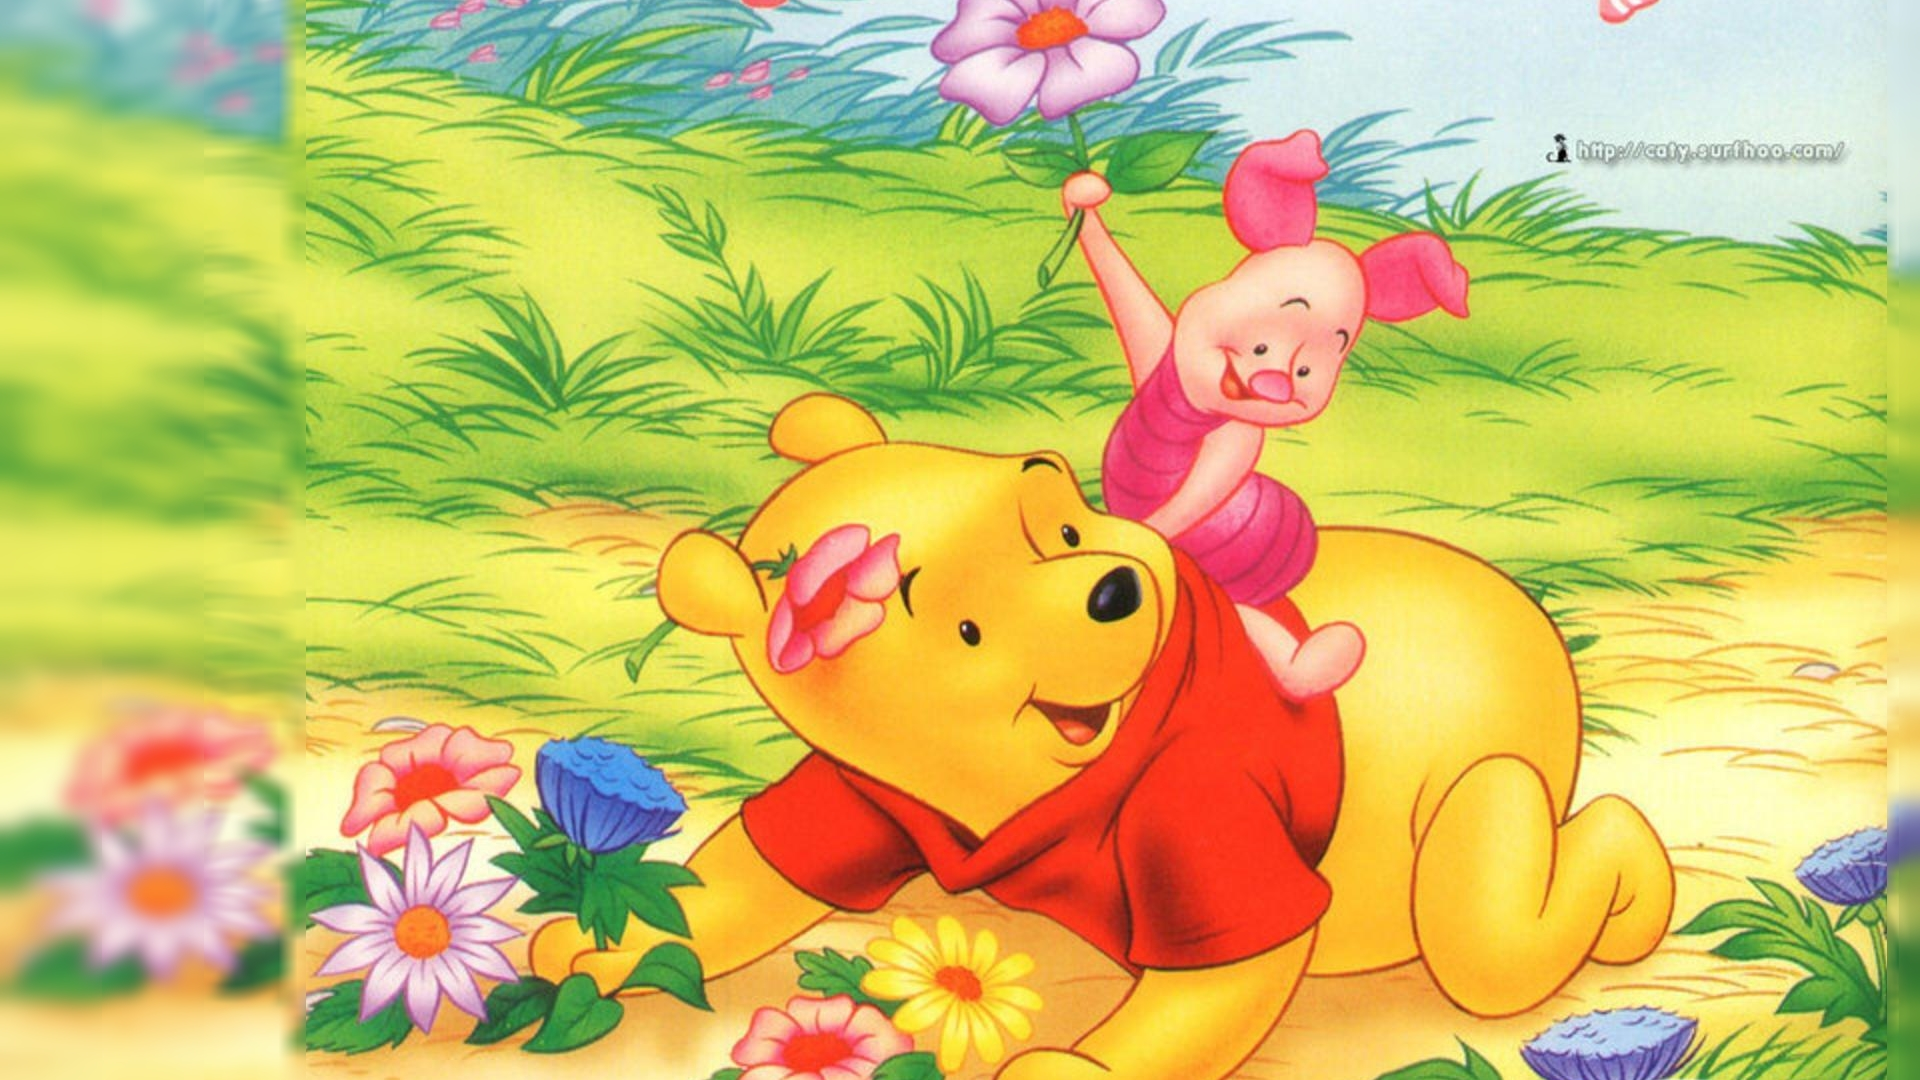 Winnie the pooh full hd wallpaper and background image 1920x1080 cartoon winnie the pooh wallpaper voltagebd Gallery